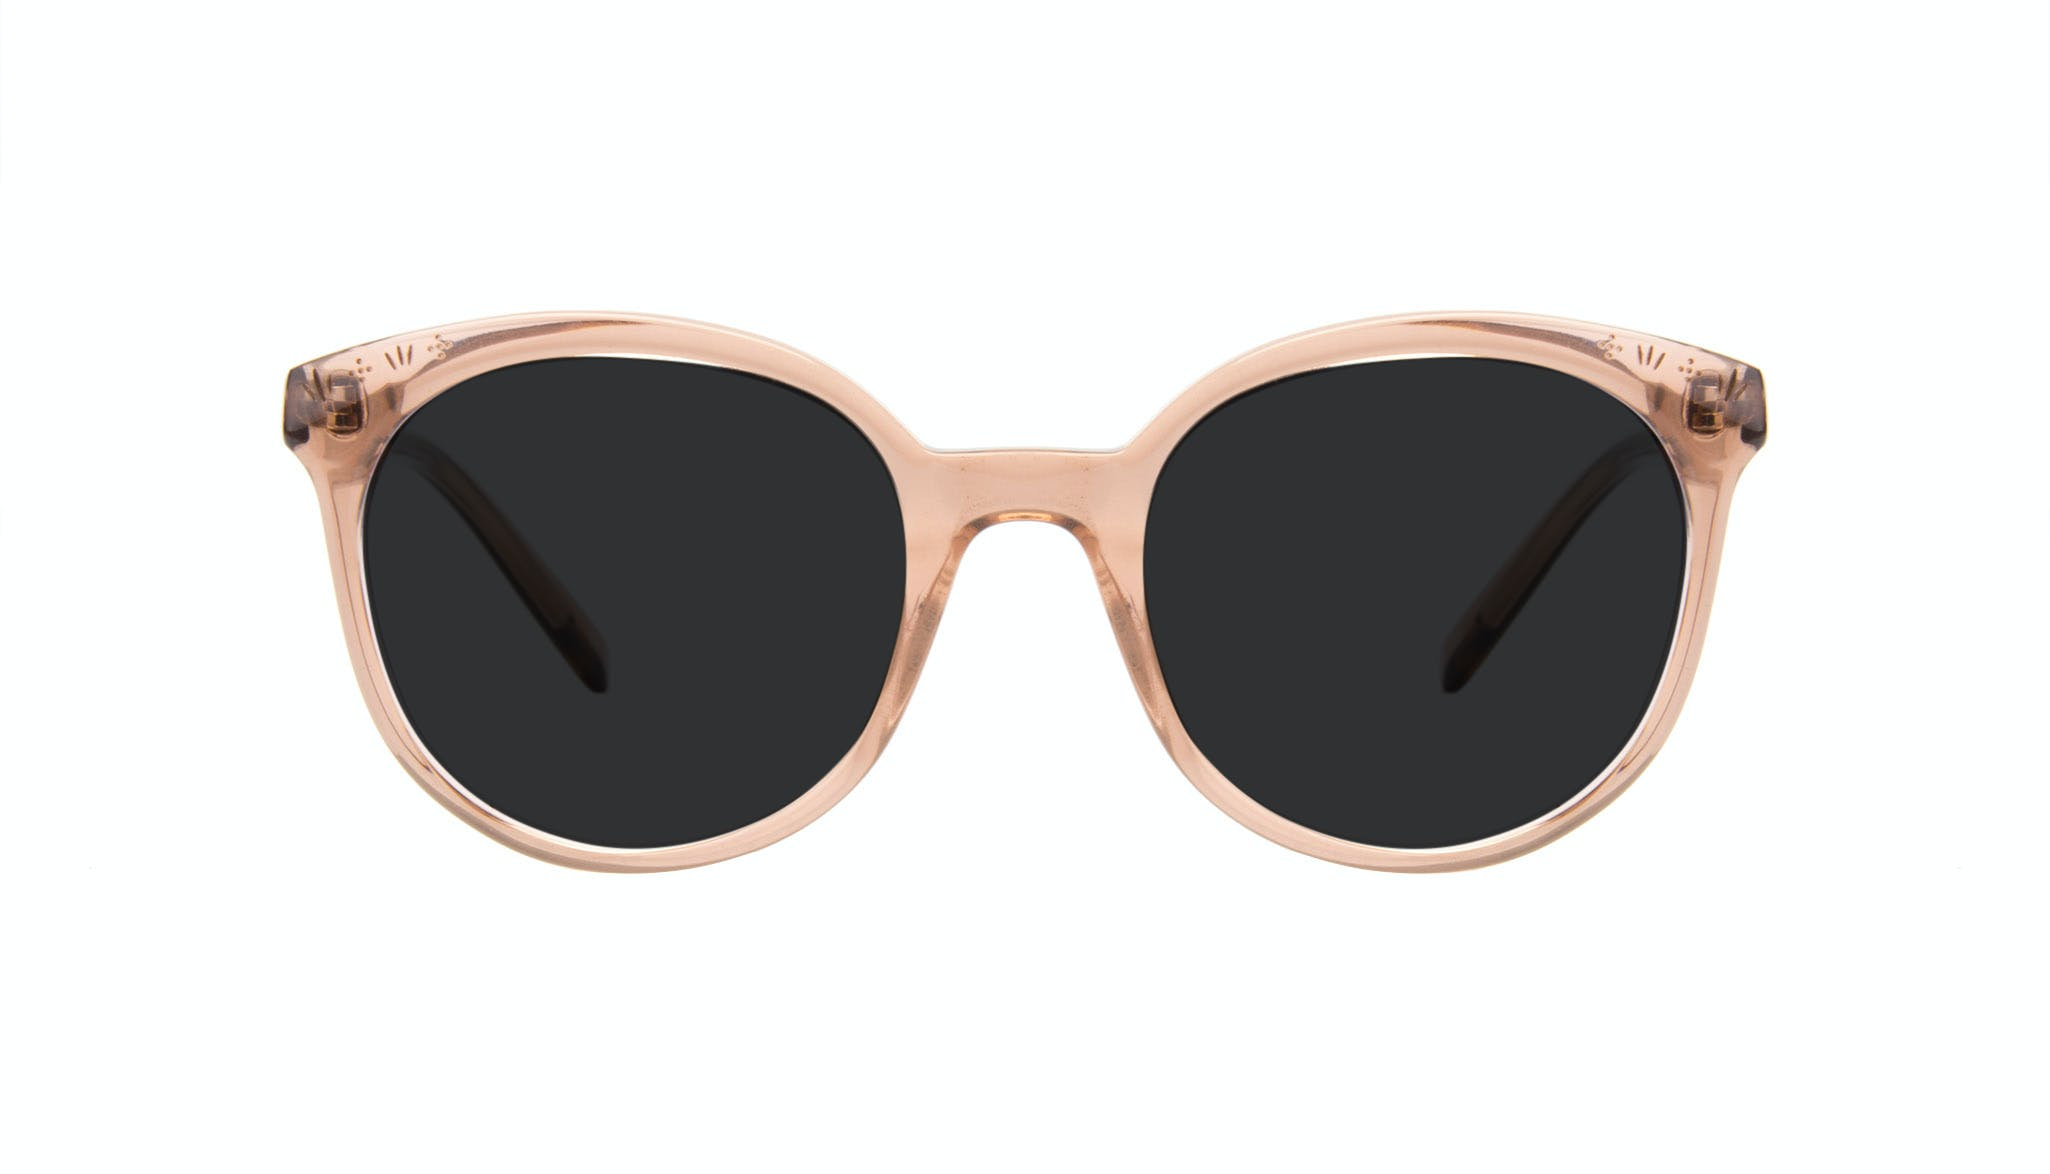 Affordable Fashion Glasses Round Sunglasses Women Must Rose